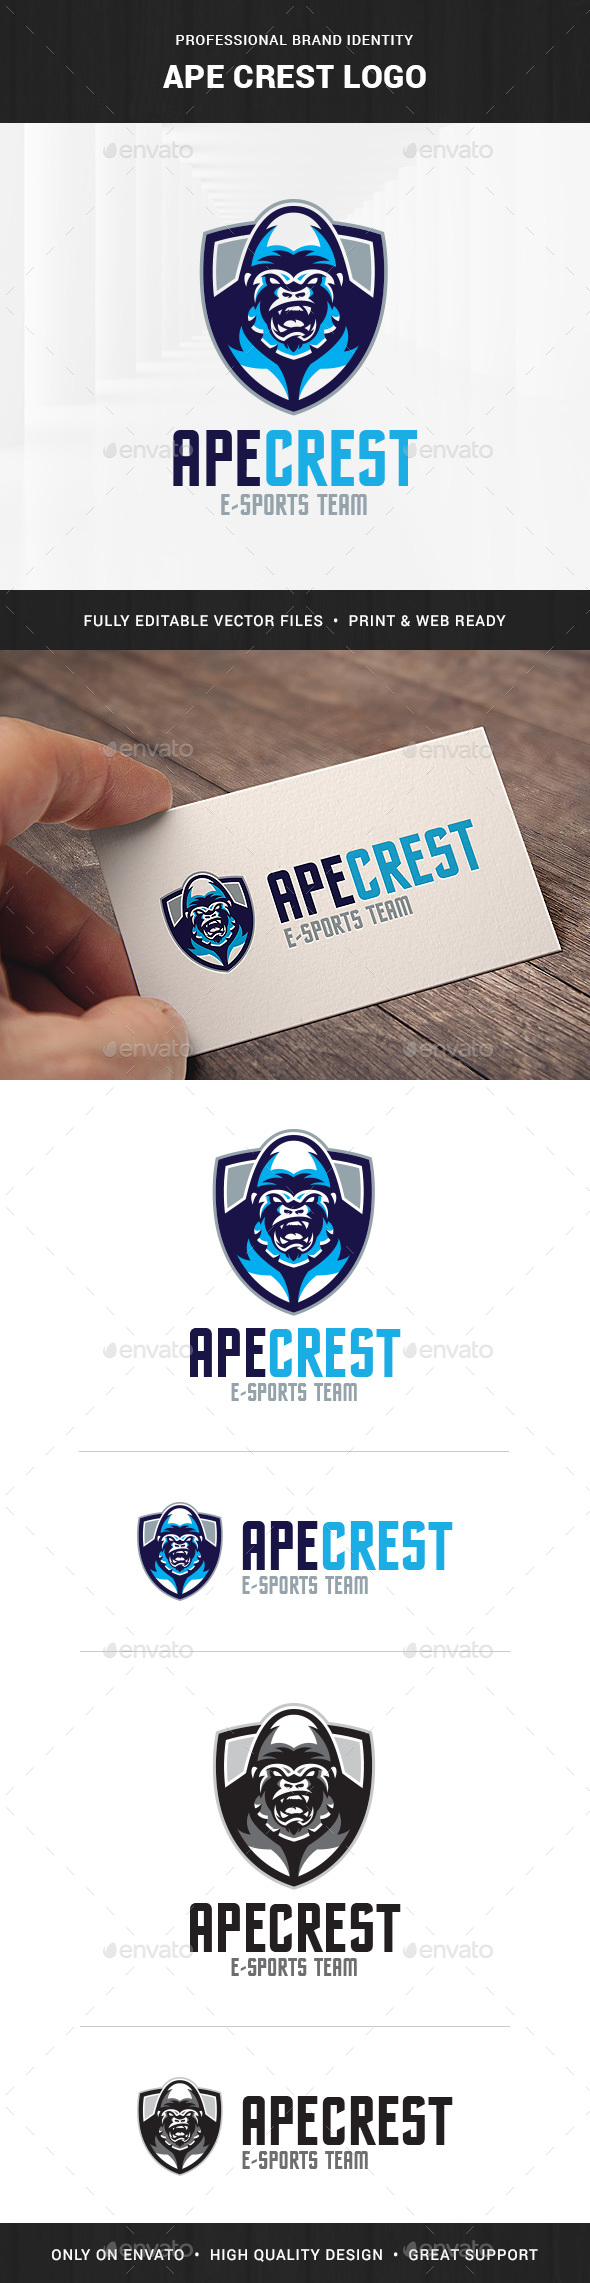 Ape Crest Logo Template - Animals Logo Templates